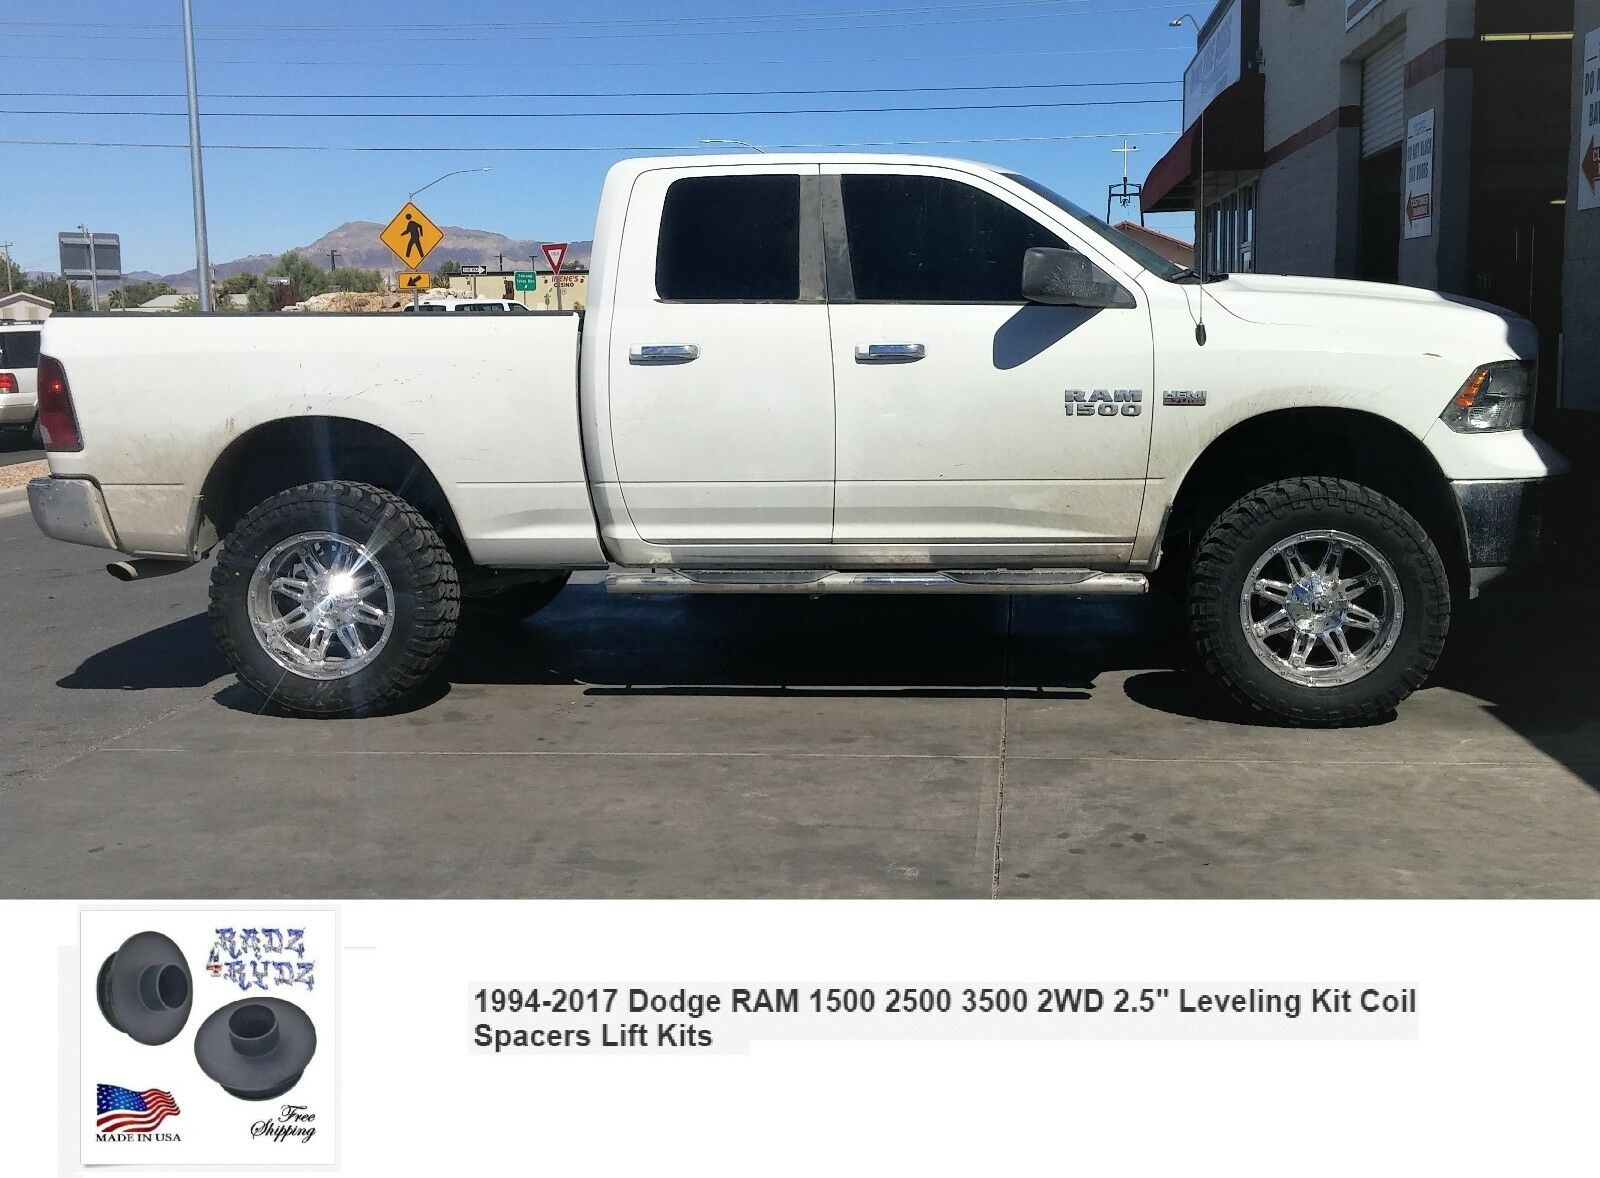 2017 Ram 1500 Leveling Kit >> 1994 2017 Dodge Ram 1500 2500 3500 2wd 2 5 Leveling Kit Coil Spacers Lift Kits